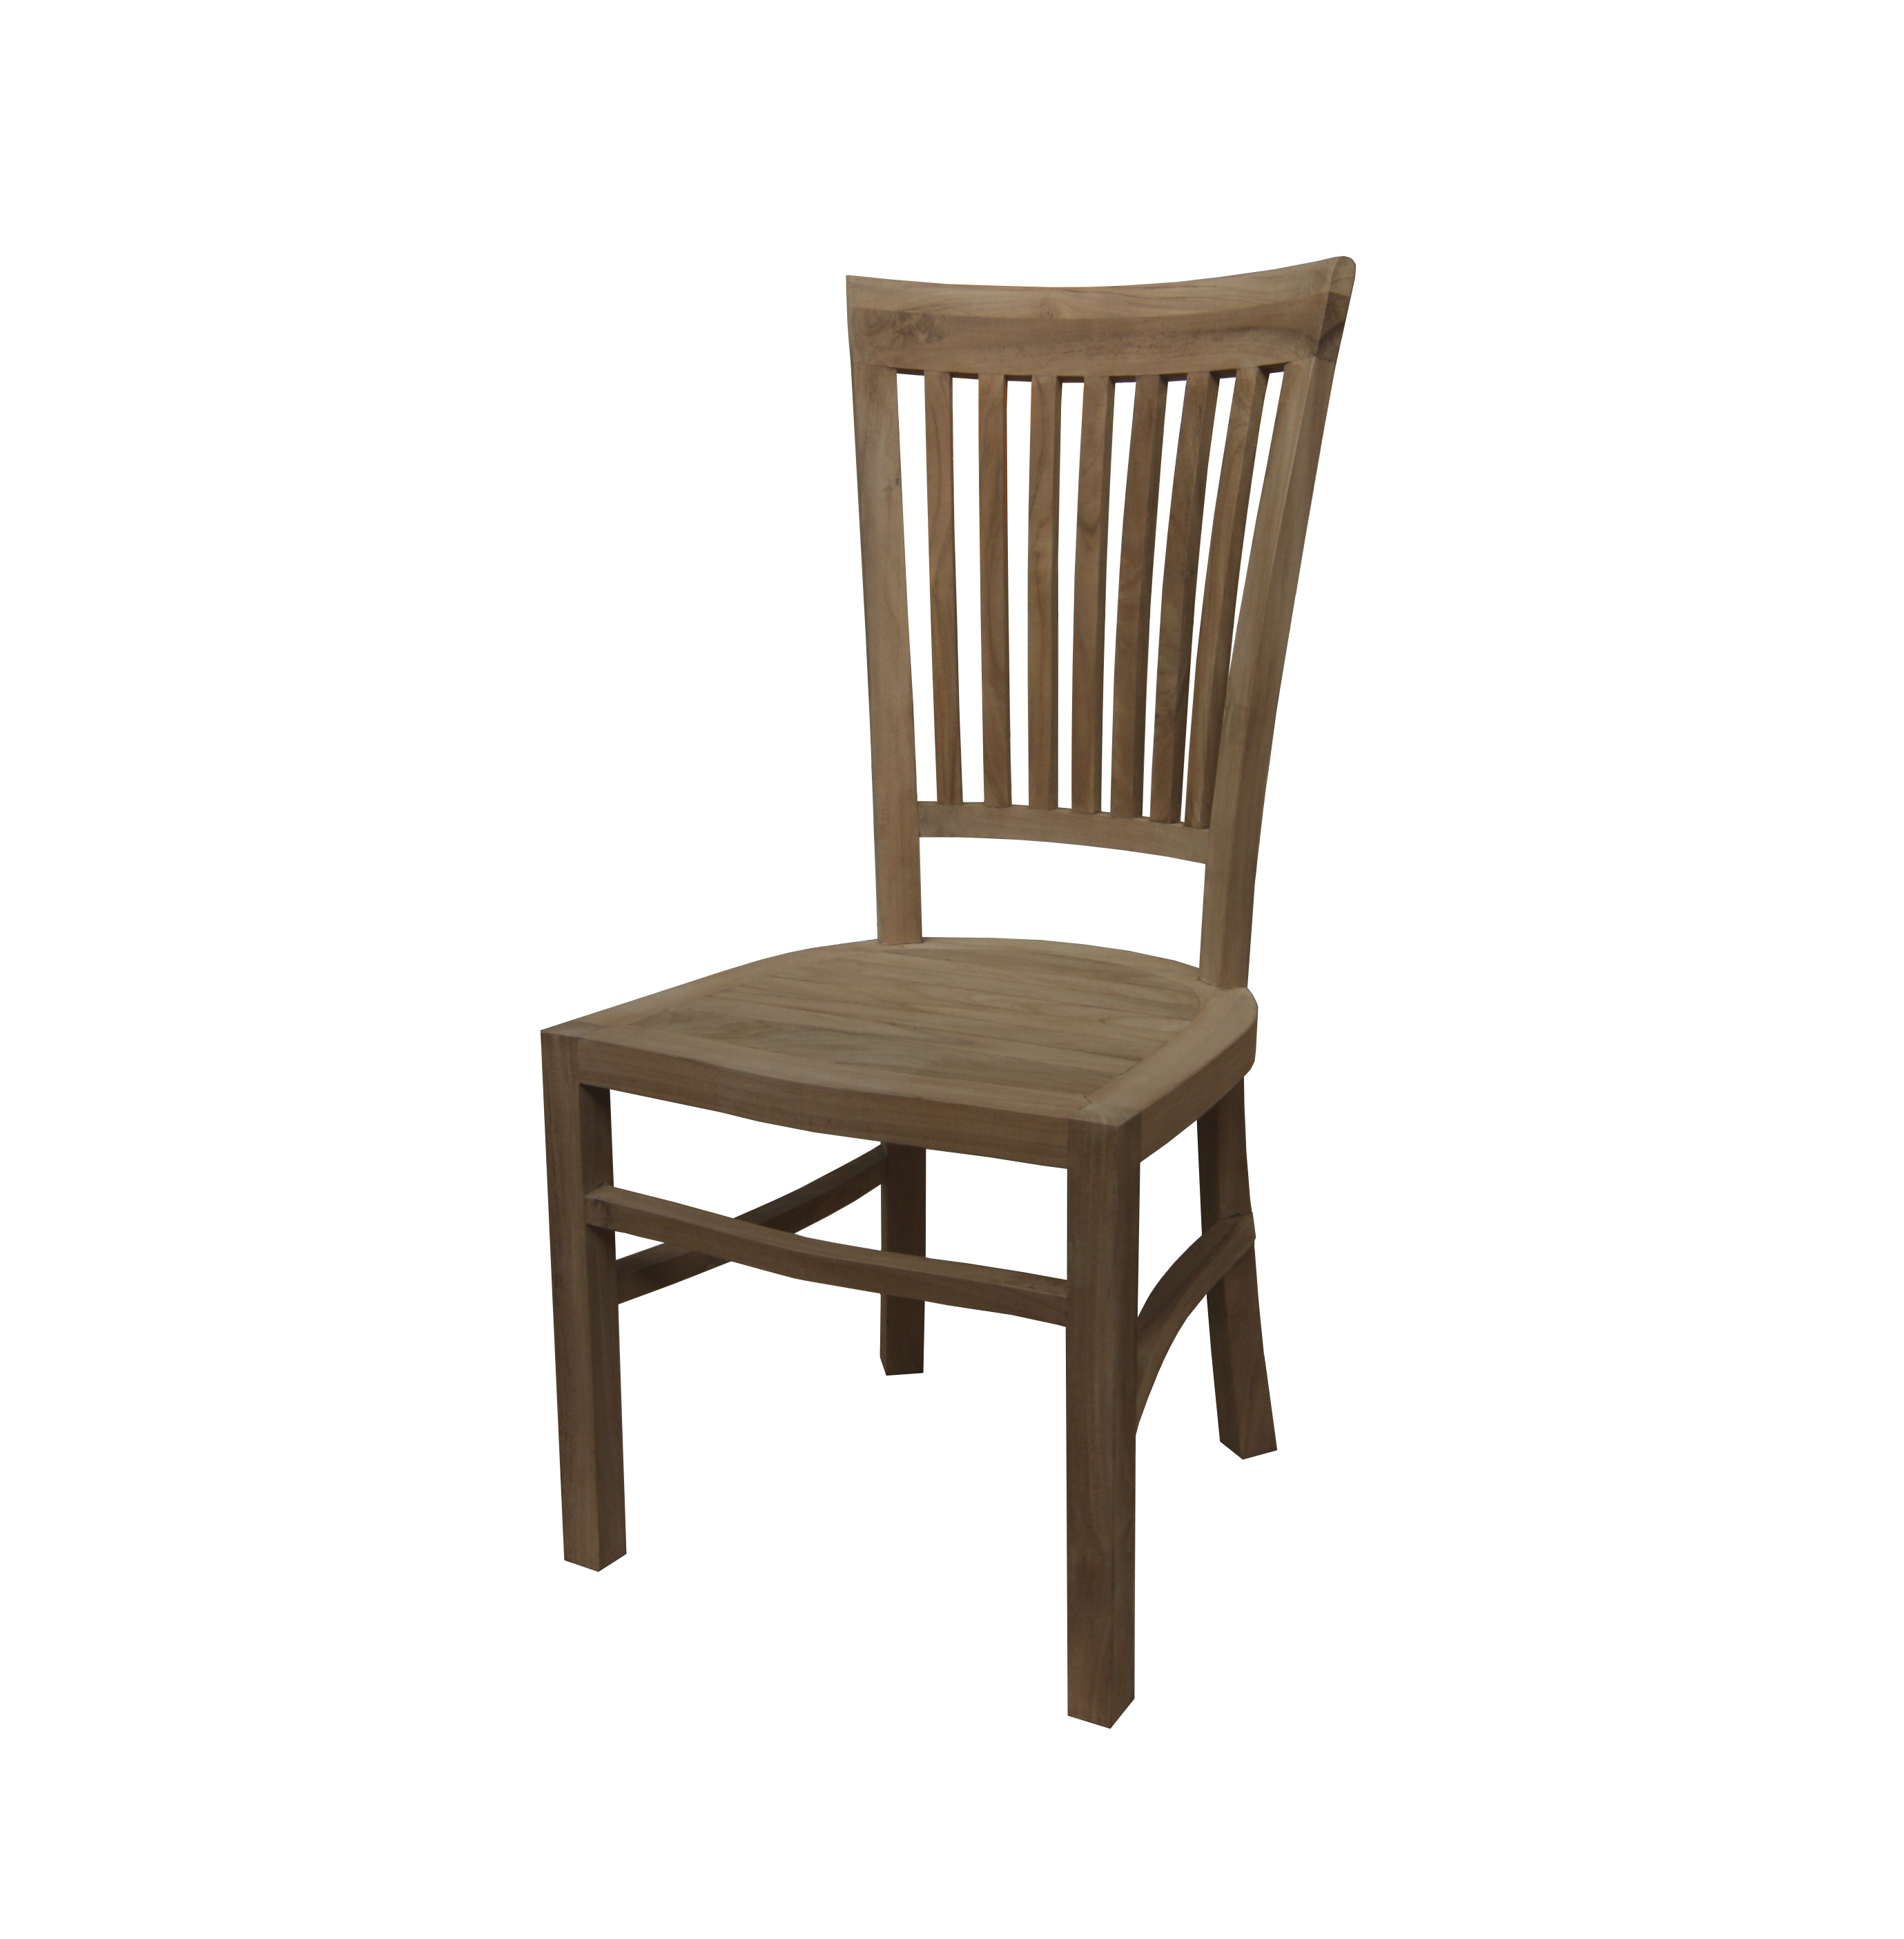 Teak Dining Chair The Todo by Ombak Solid Reclaimed Teak